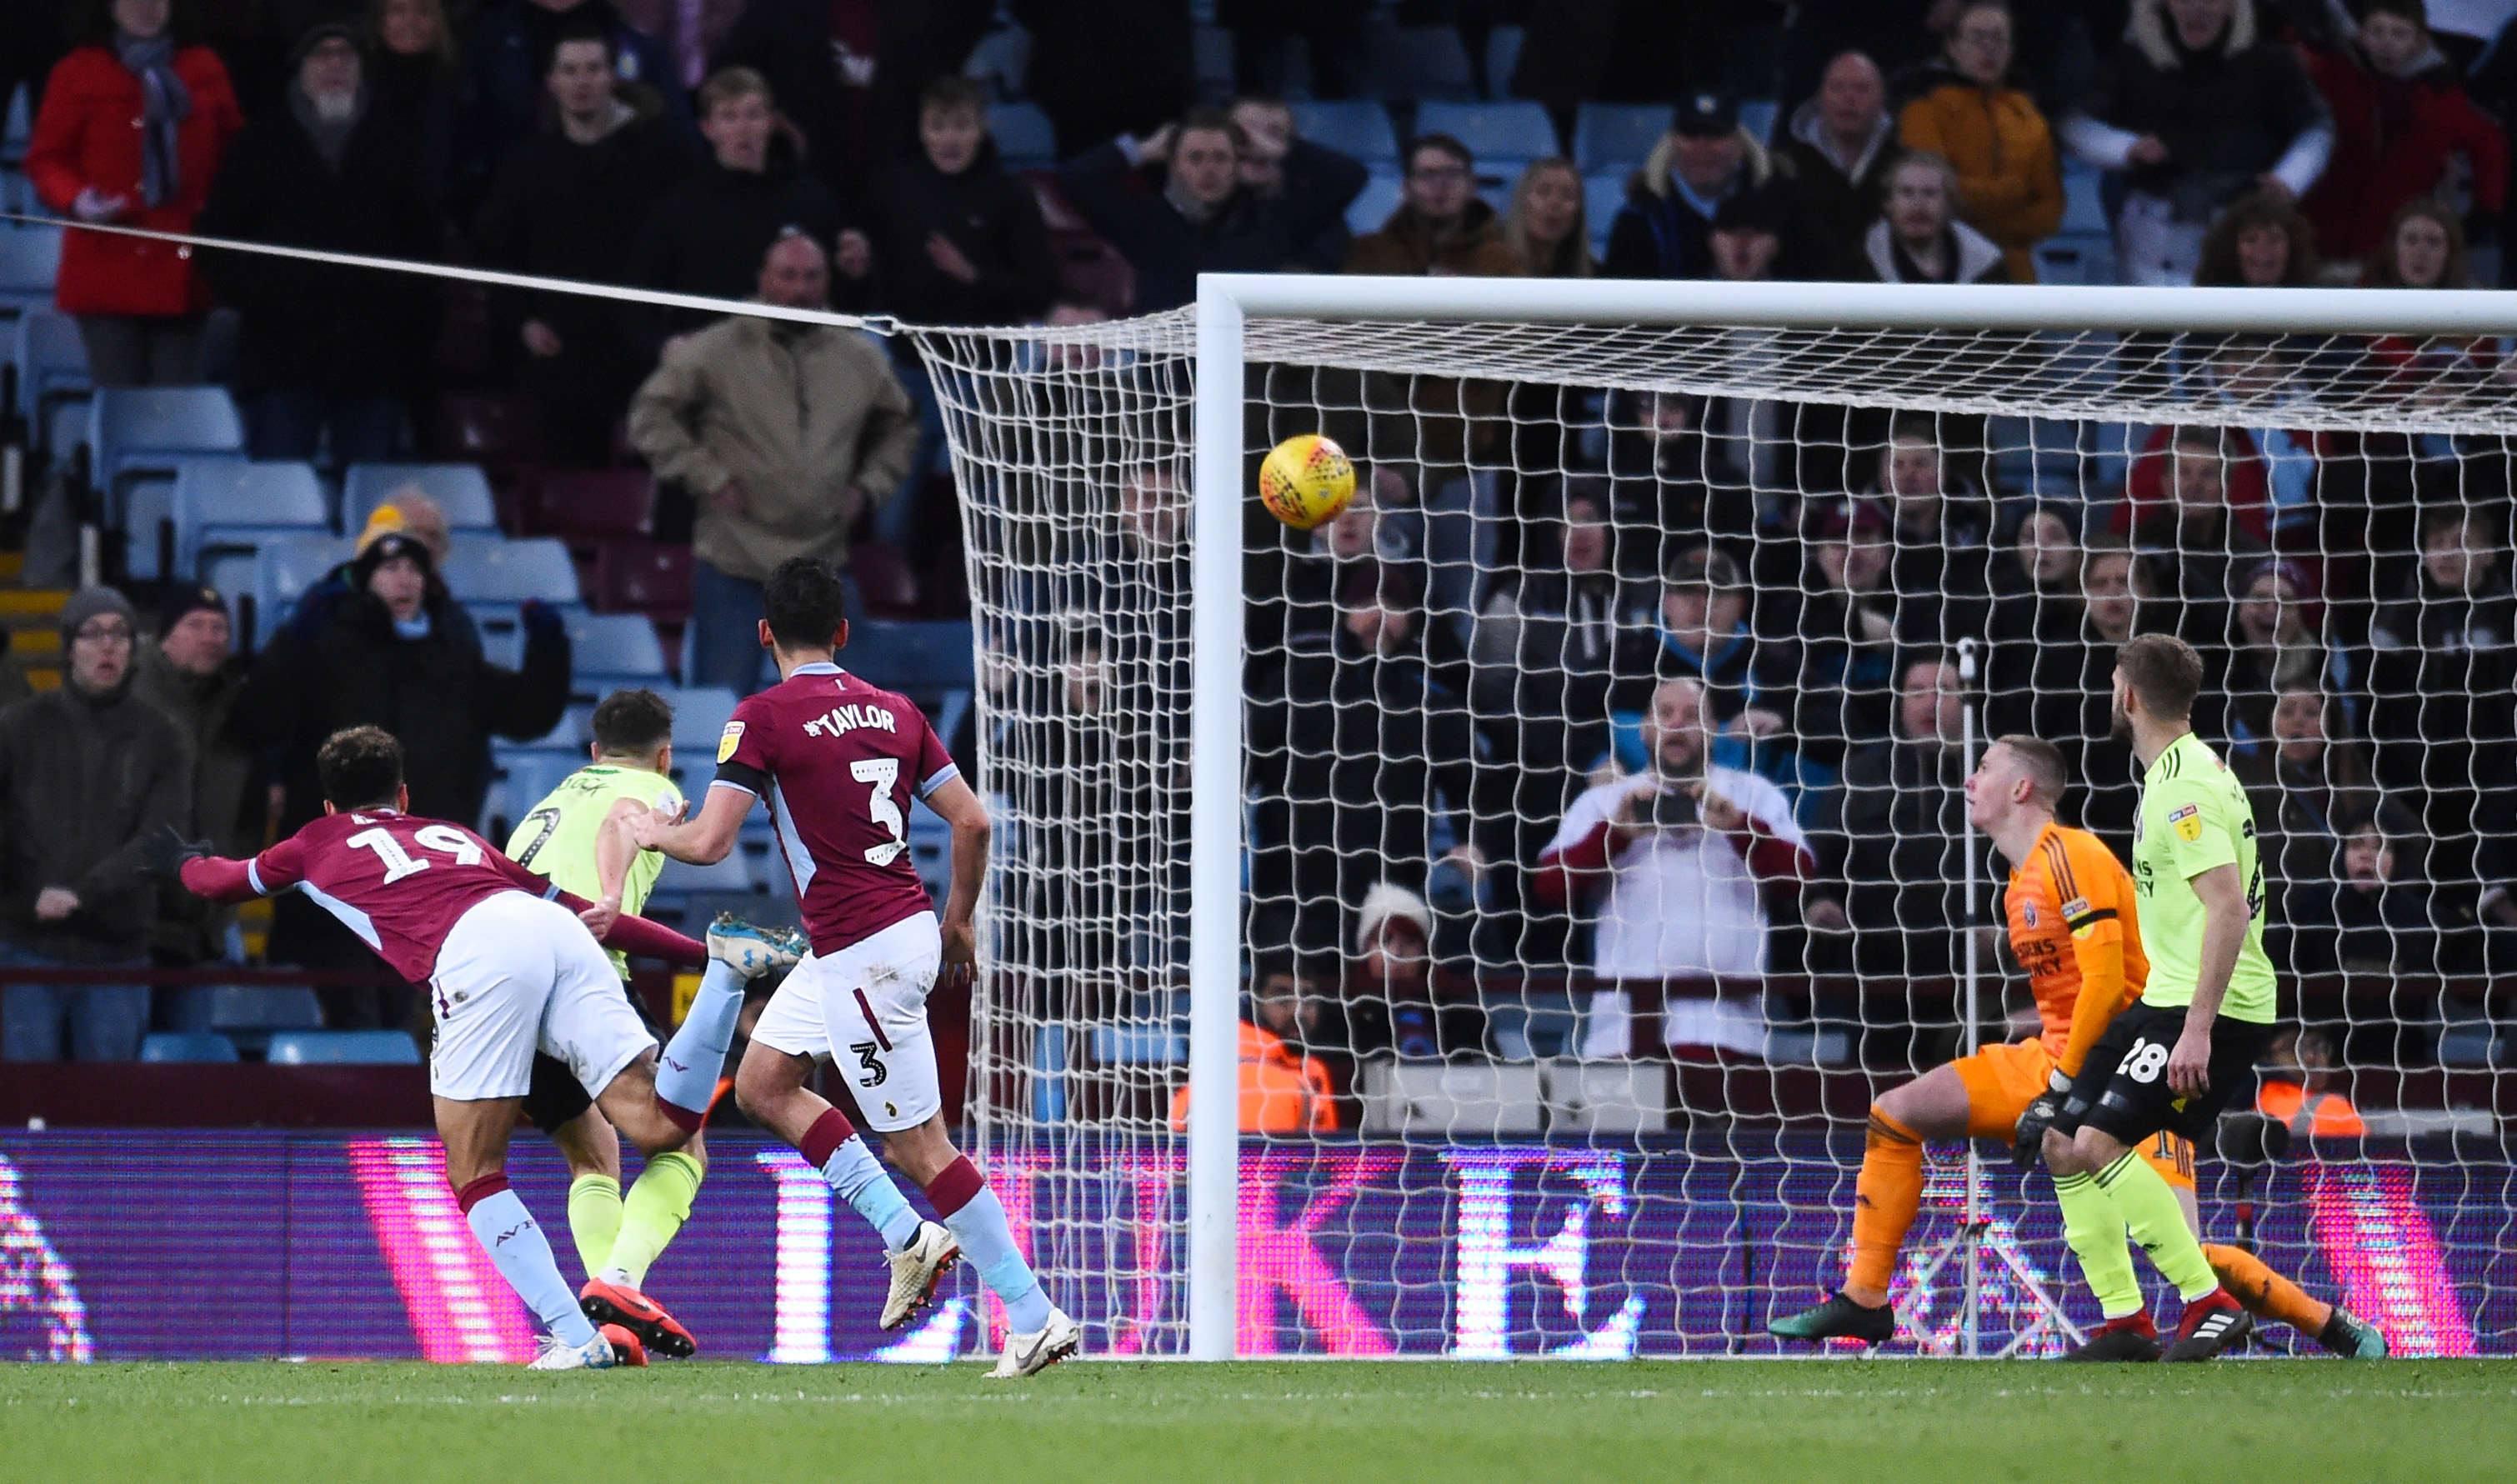 Dean Smith hails Aston Villa 'spirit and character' after dramatic comeback